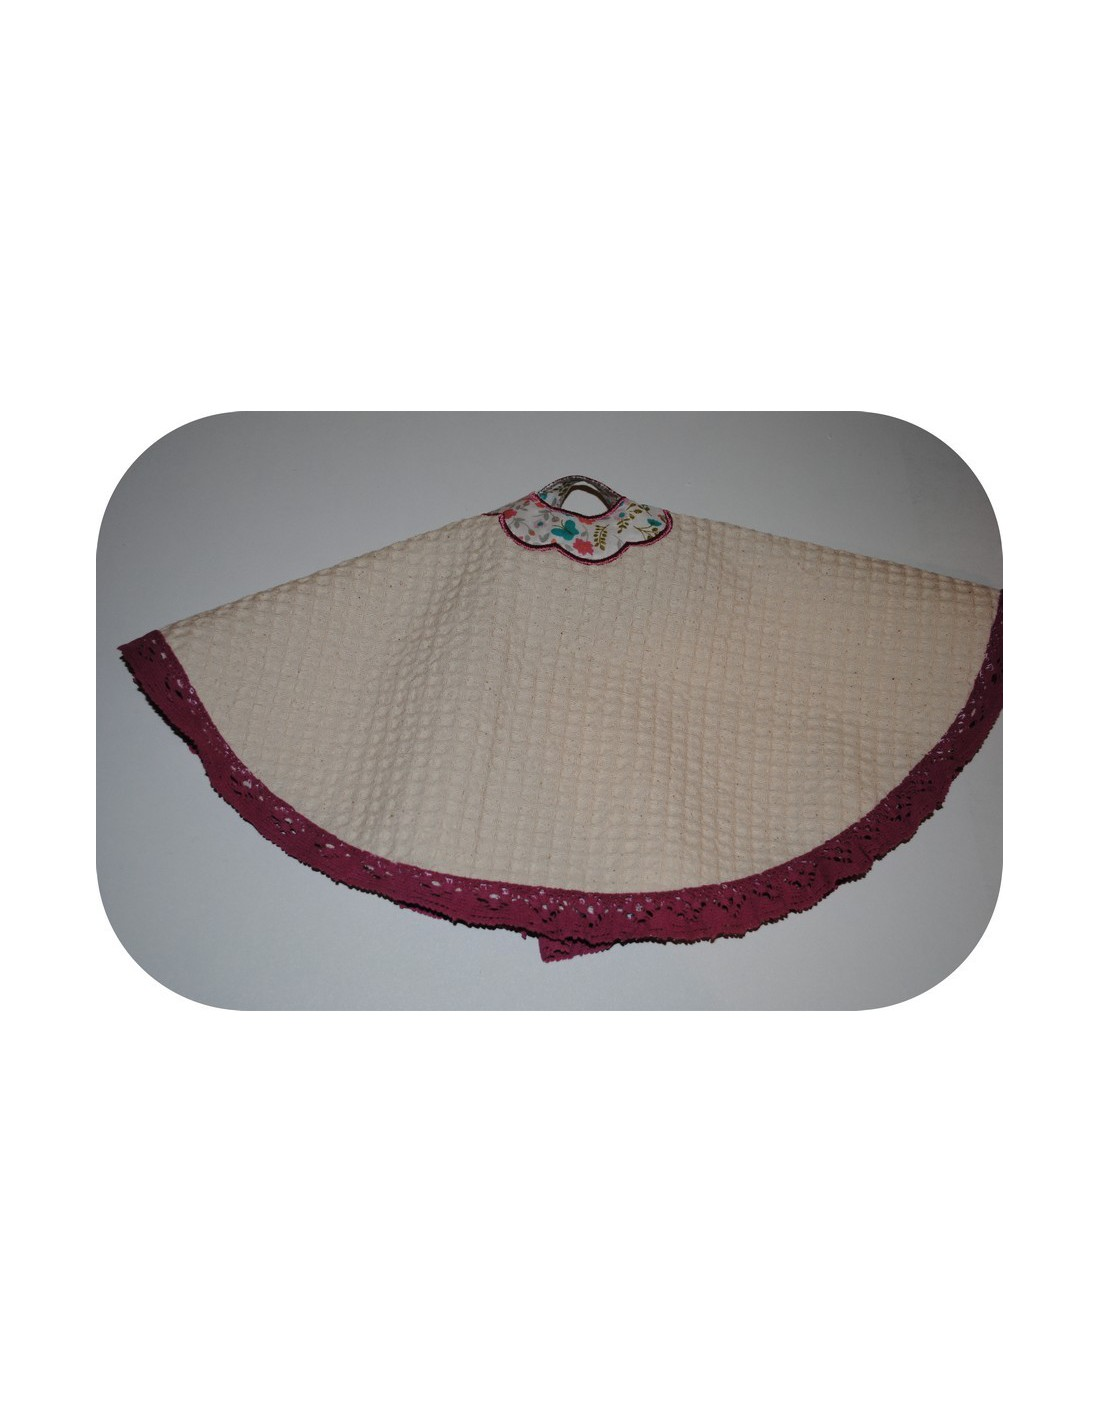 embroidery machine design ith flower Towel Topper